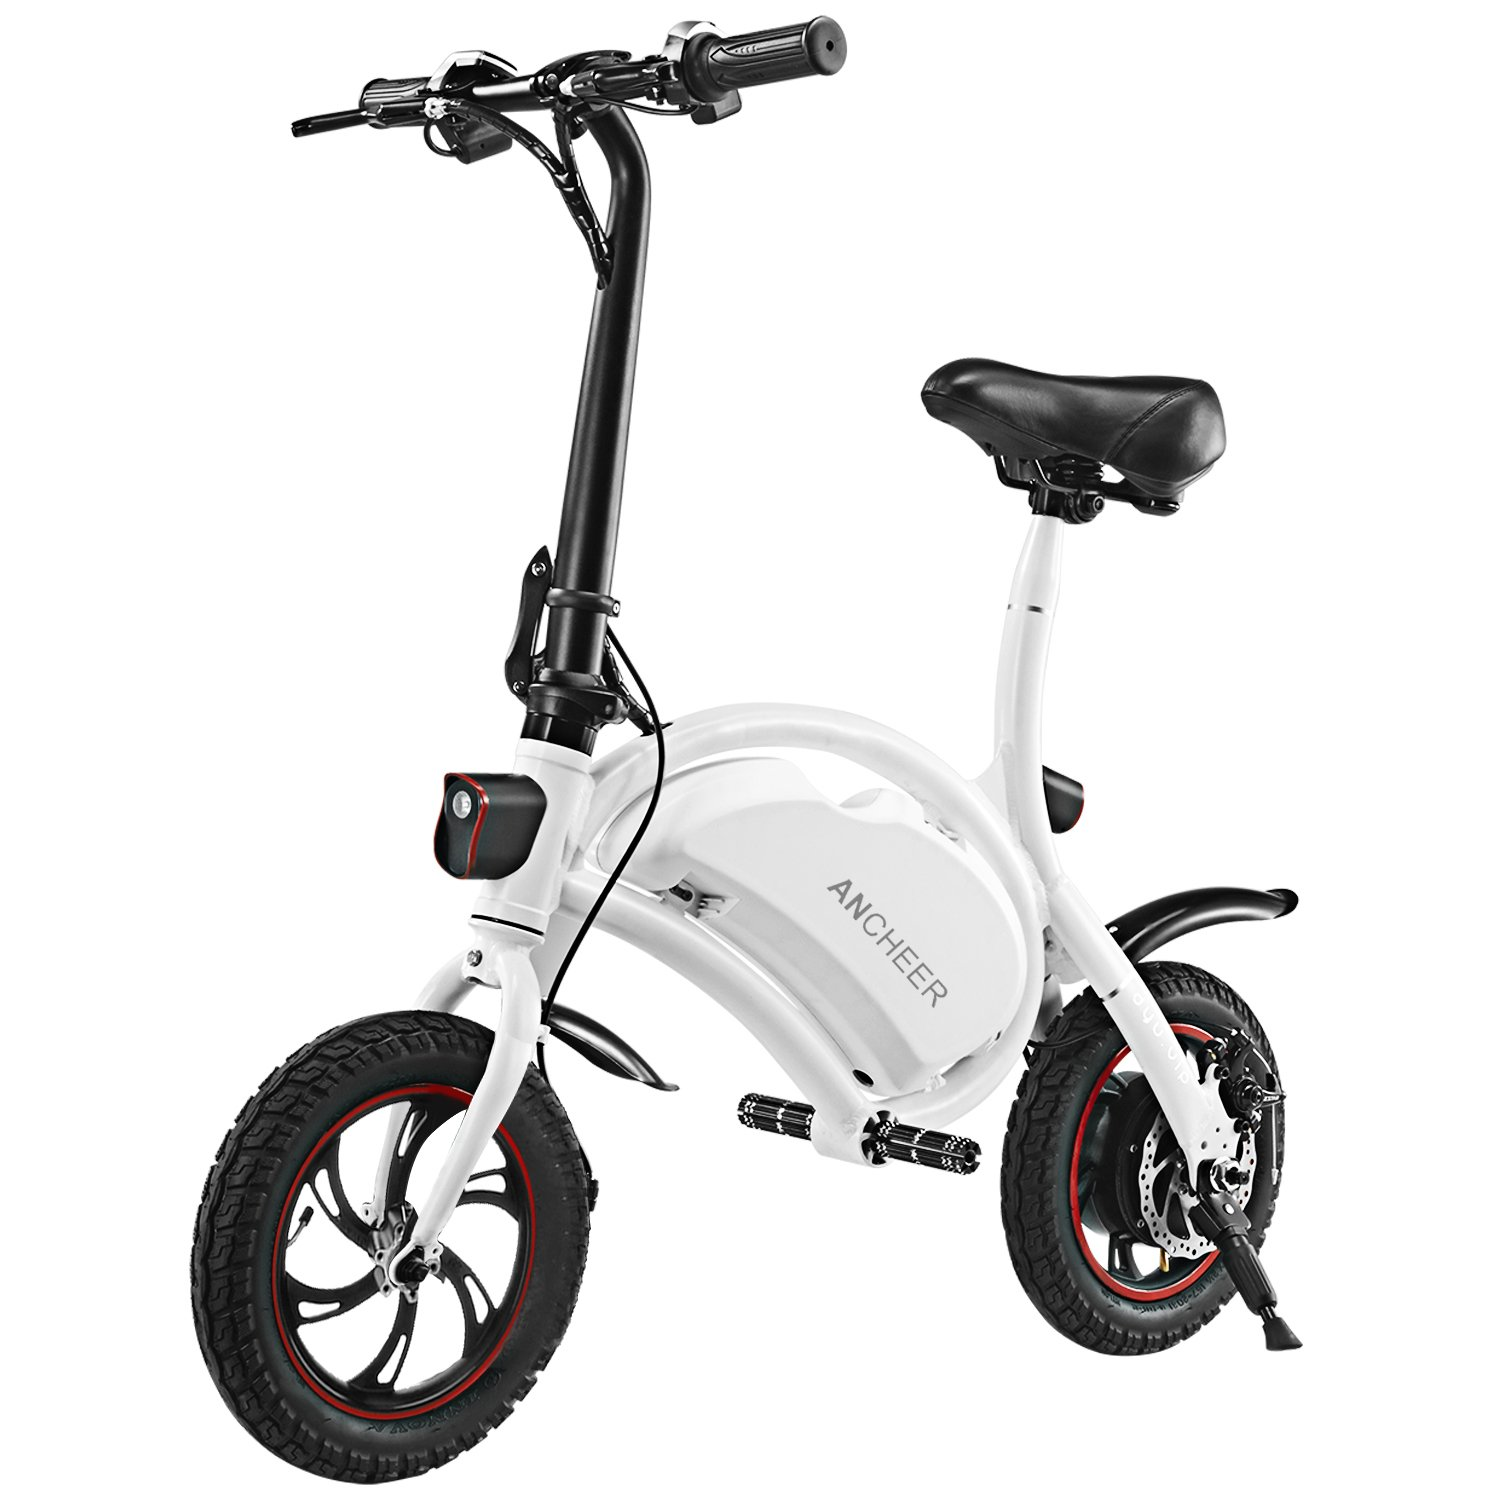 Ancheer electric scooter with seat